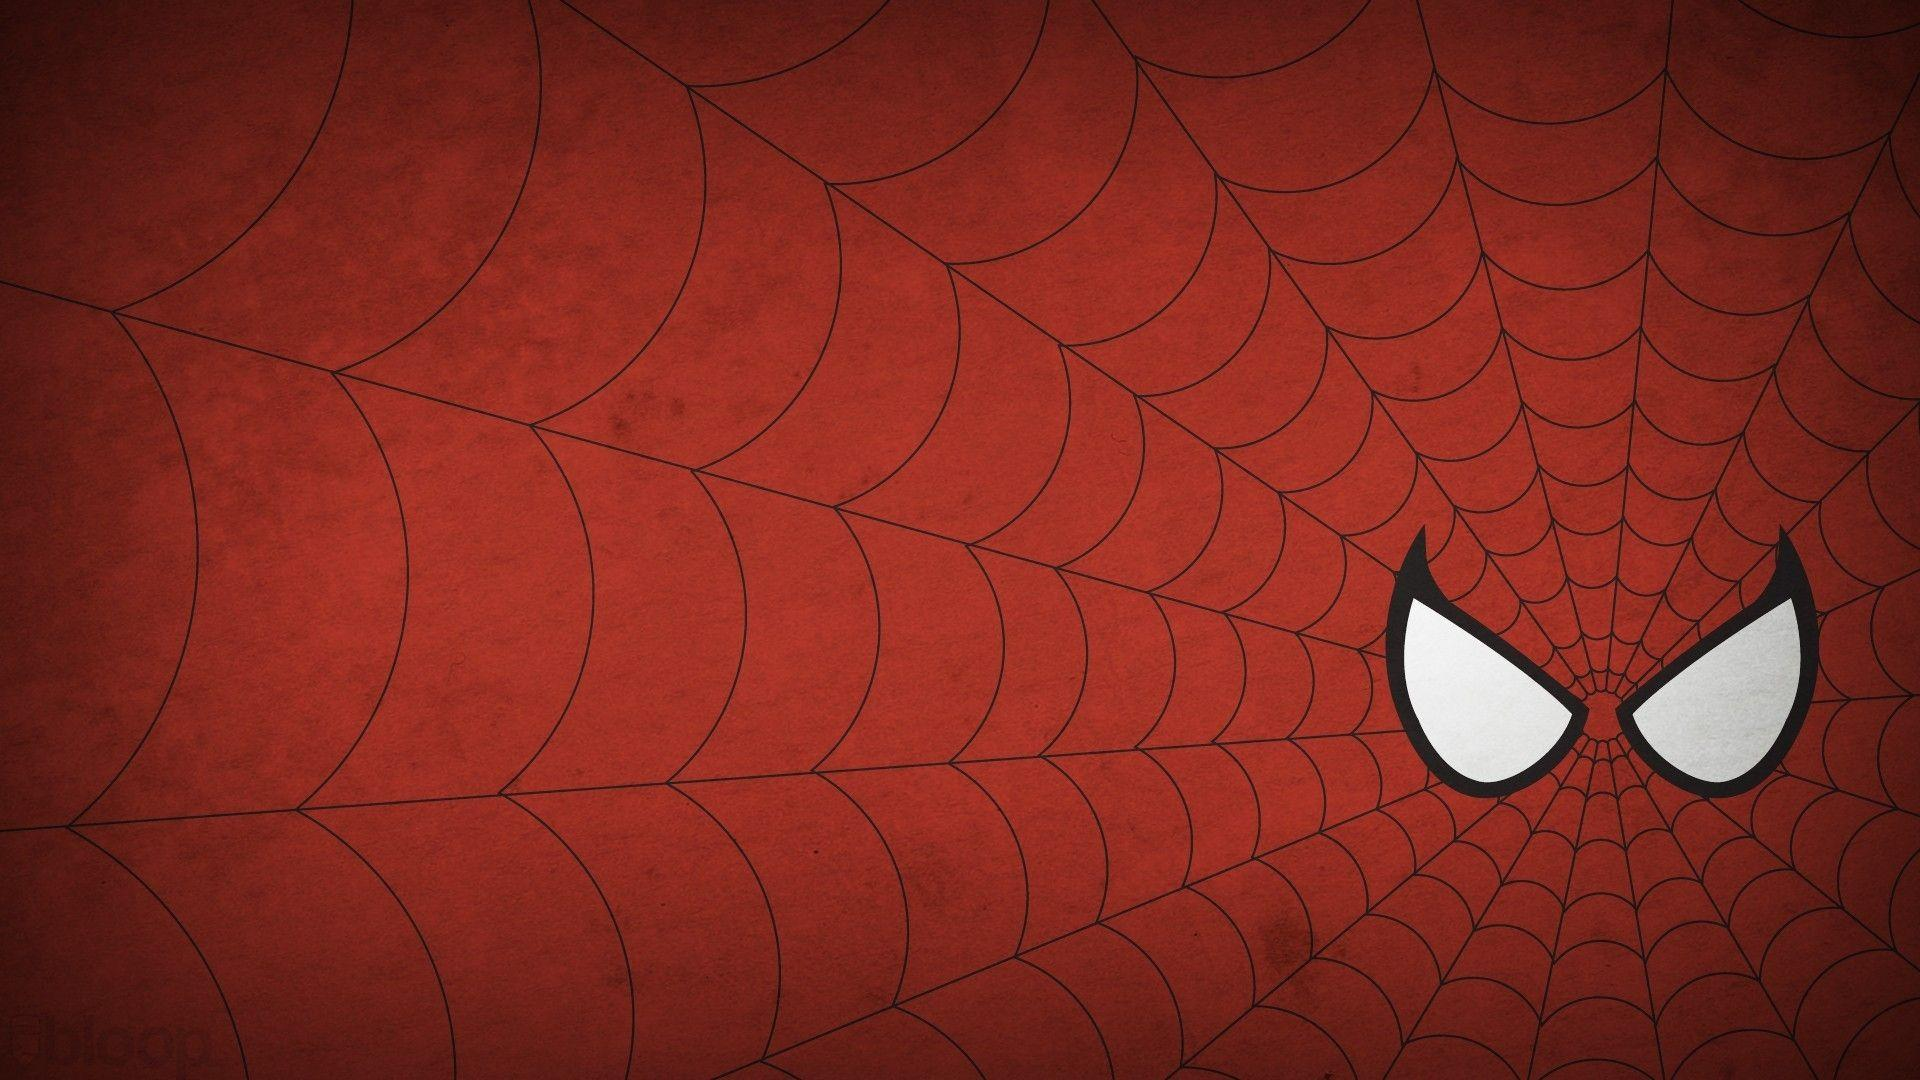 marvel comics spiderman logo 1920x1080 wallpapers